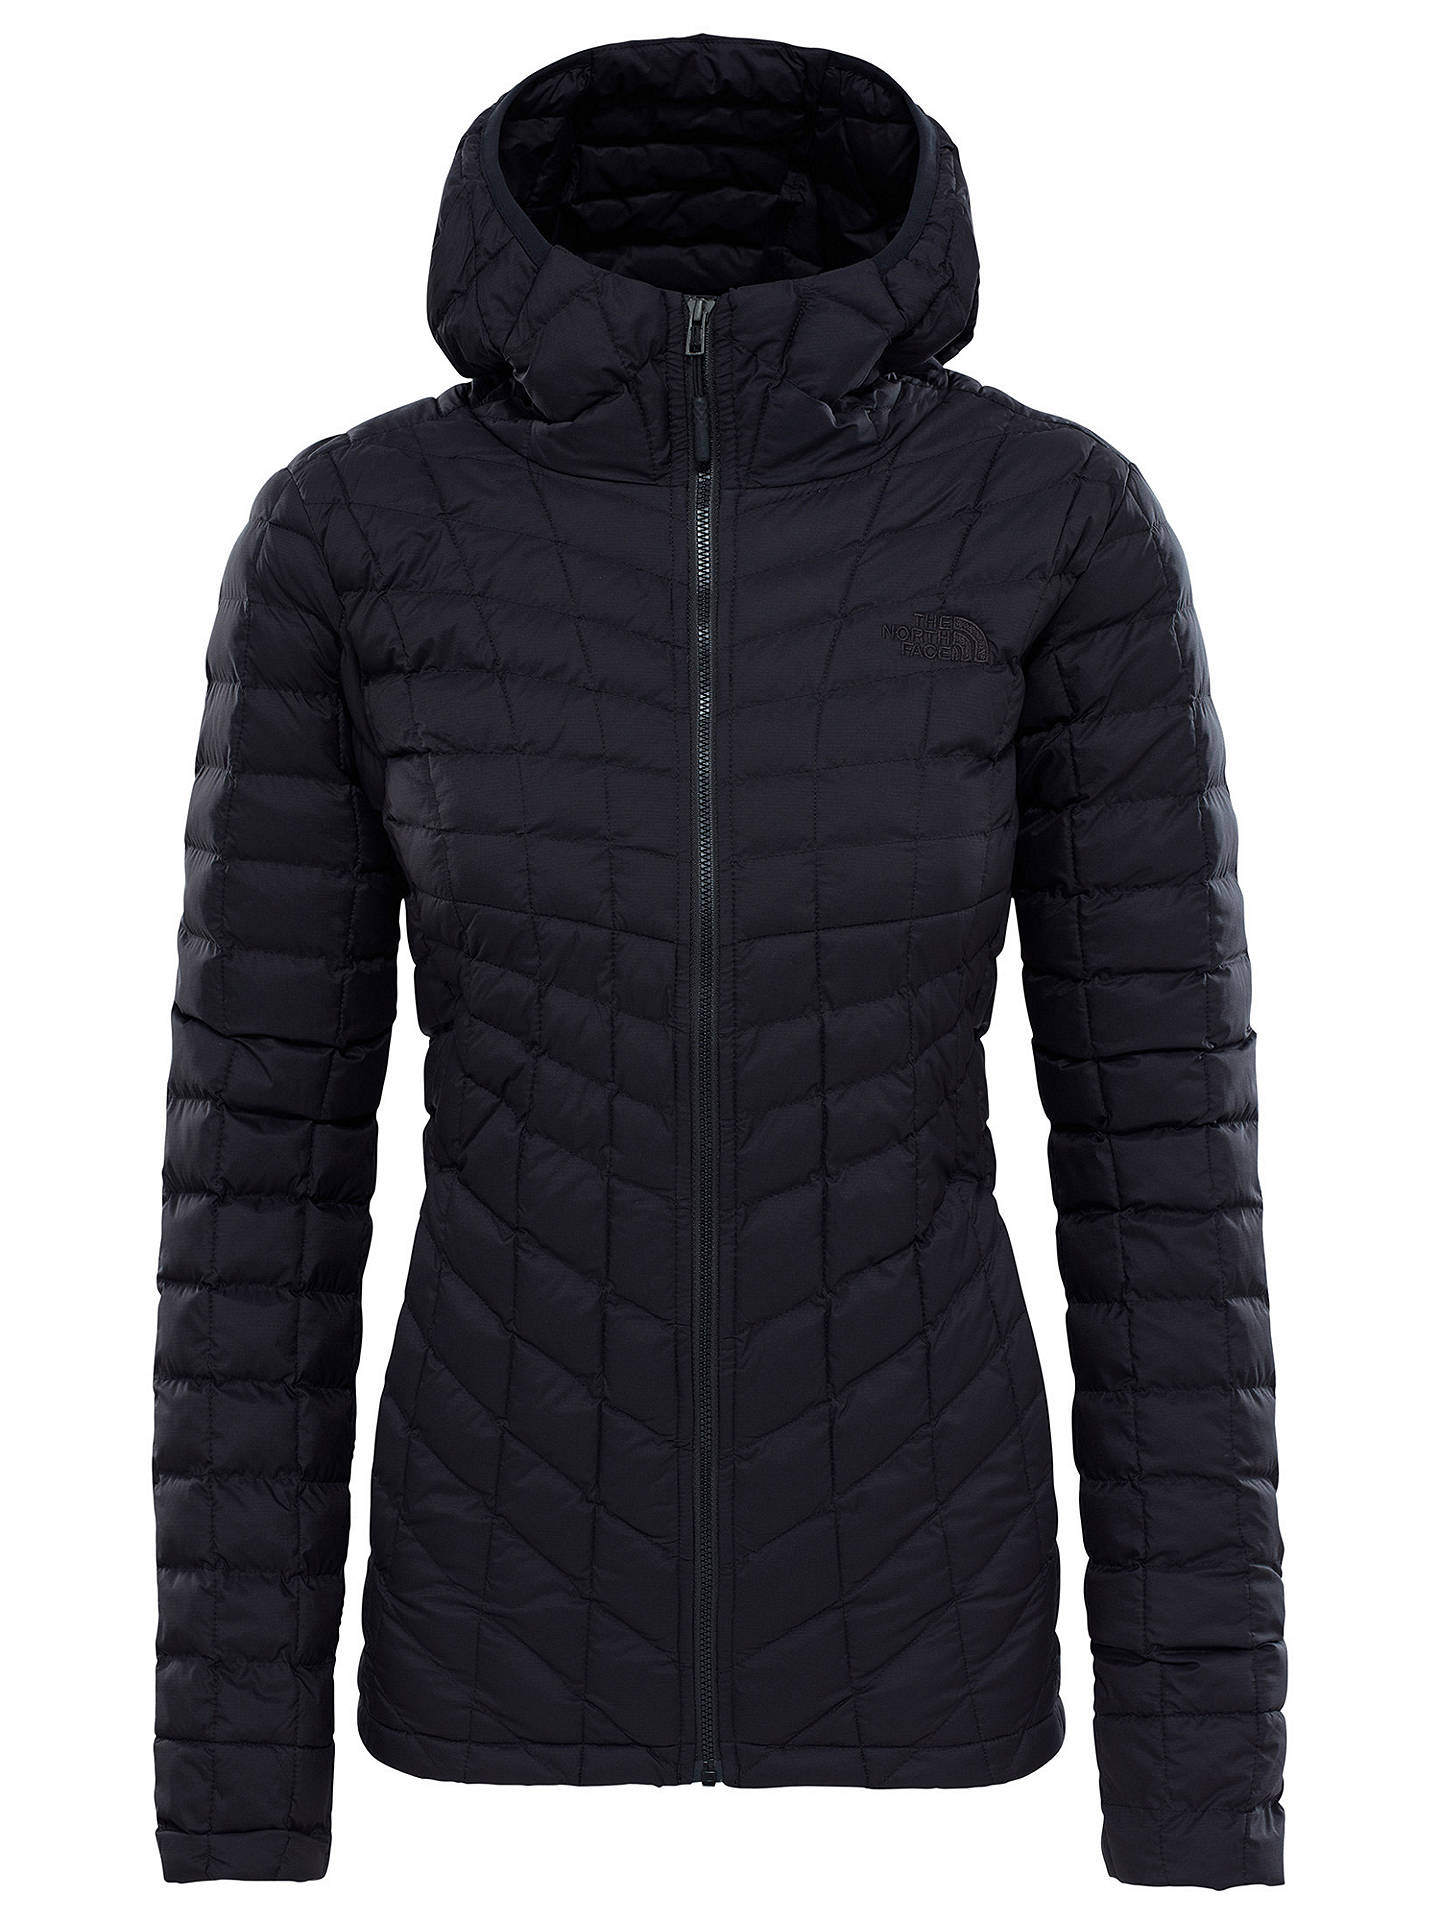 f68eed75dff1 The North Face Thermoball Hooded Women s Insulated Jacket at John ...